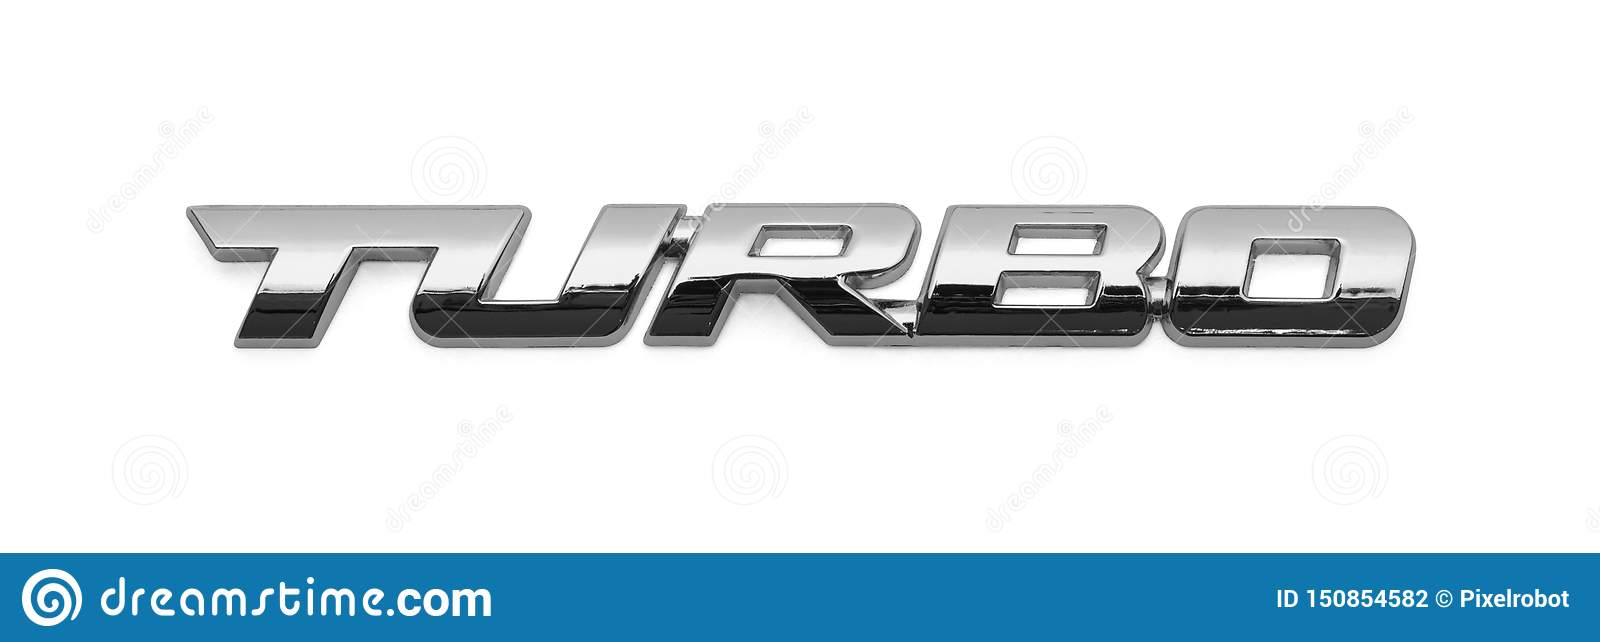 Turbo Car Logo